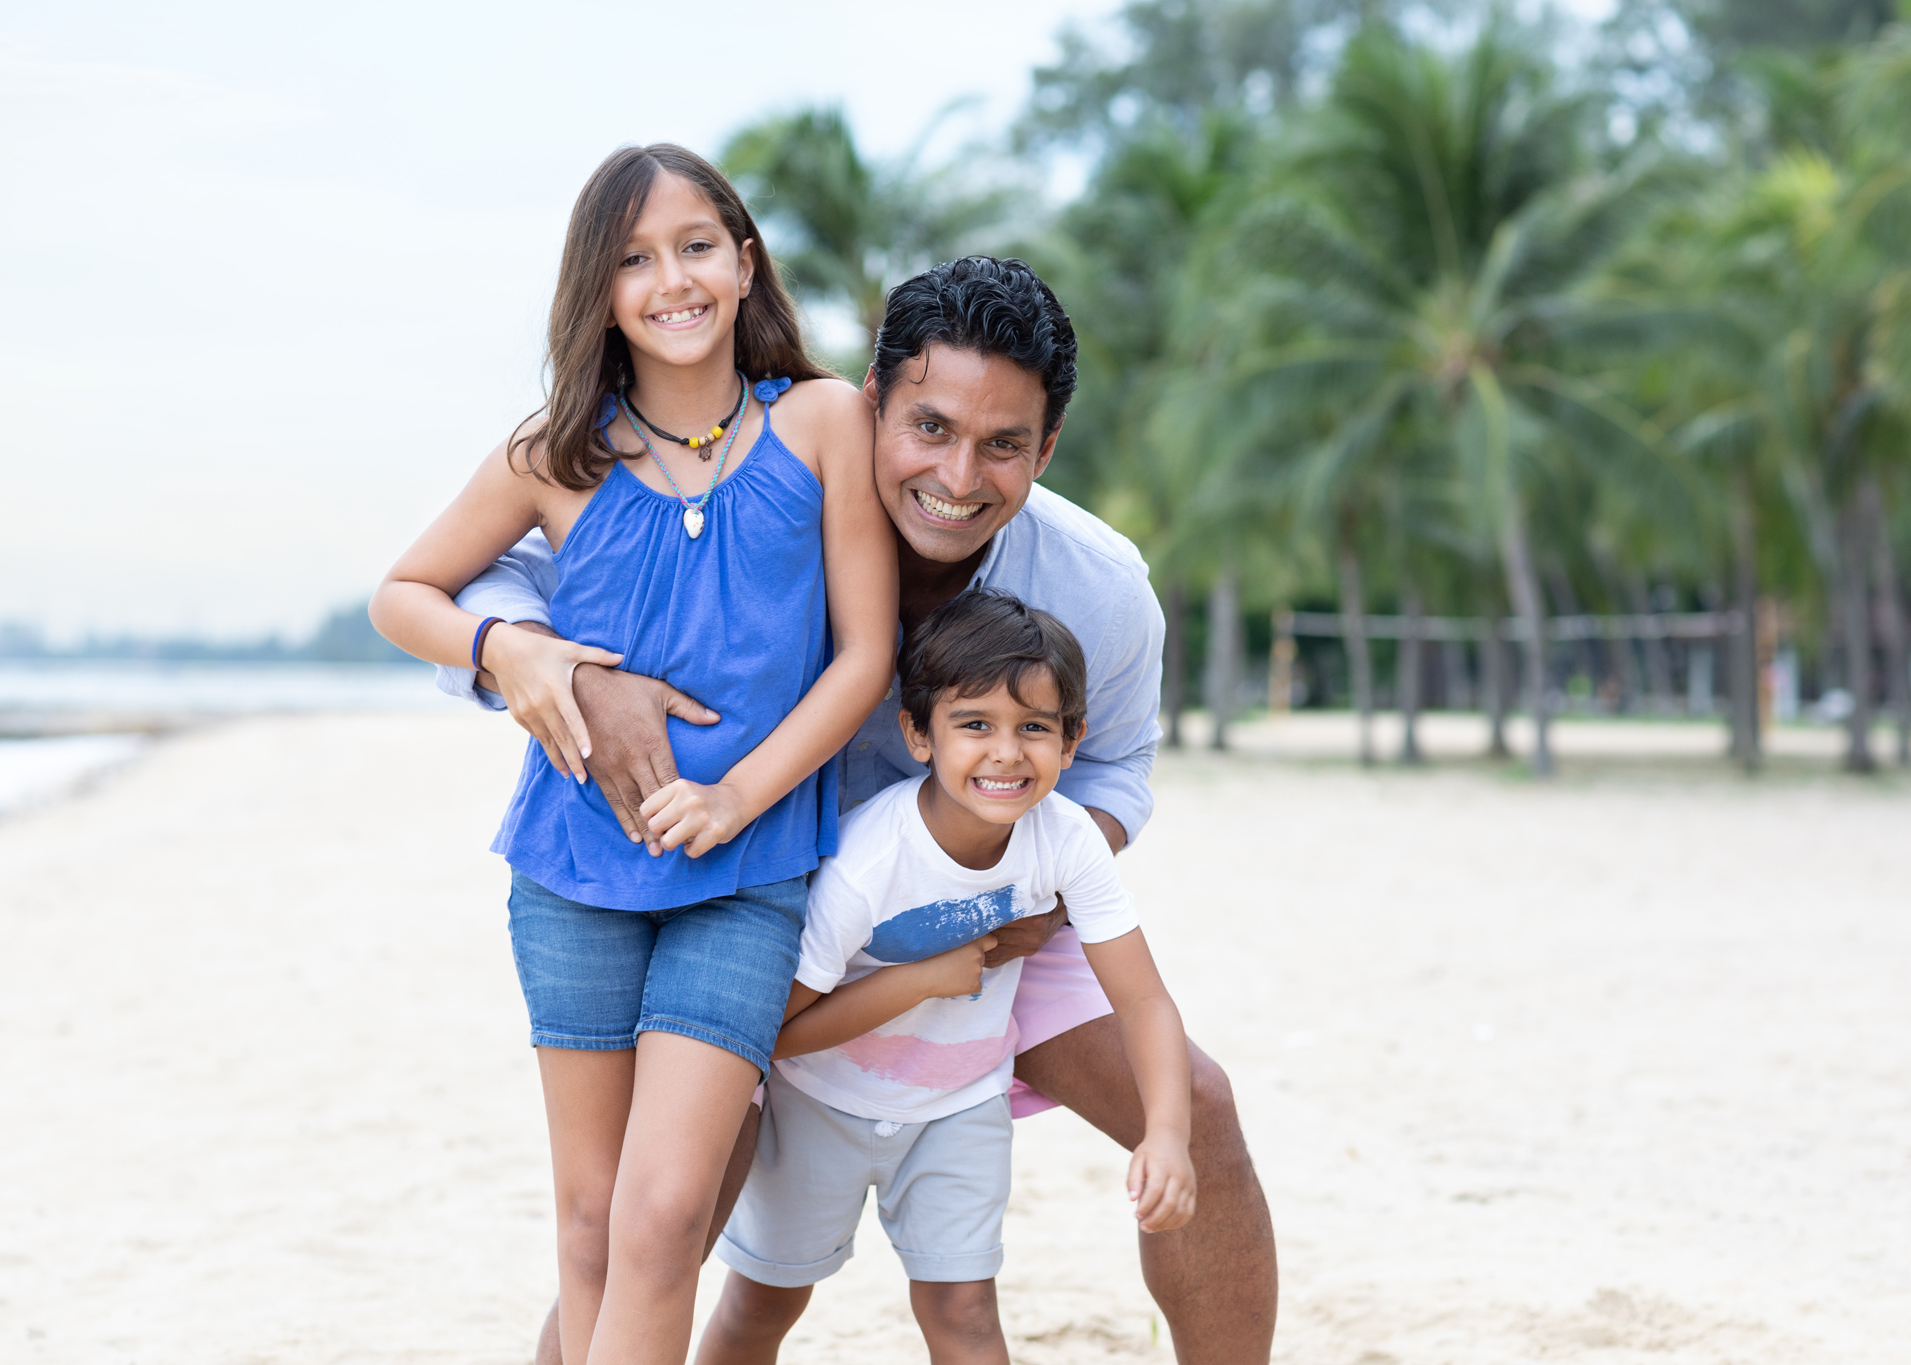 father and kids photoshoot singapore playful and candid moment with backlight photos